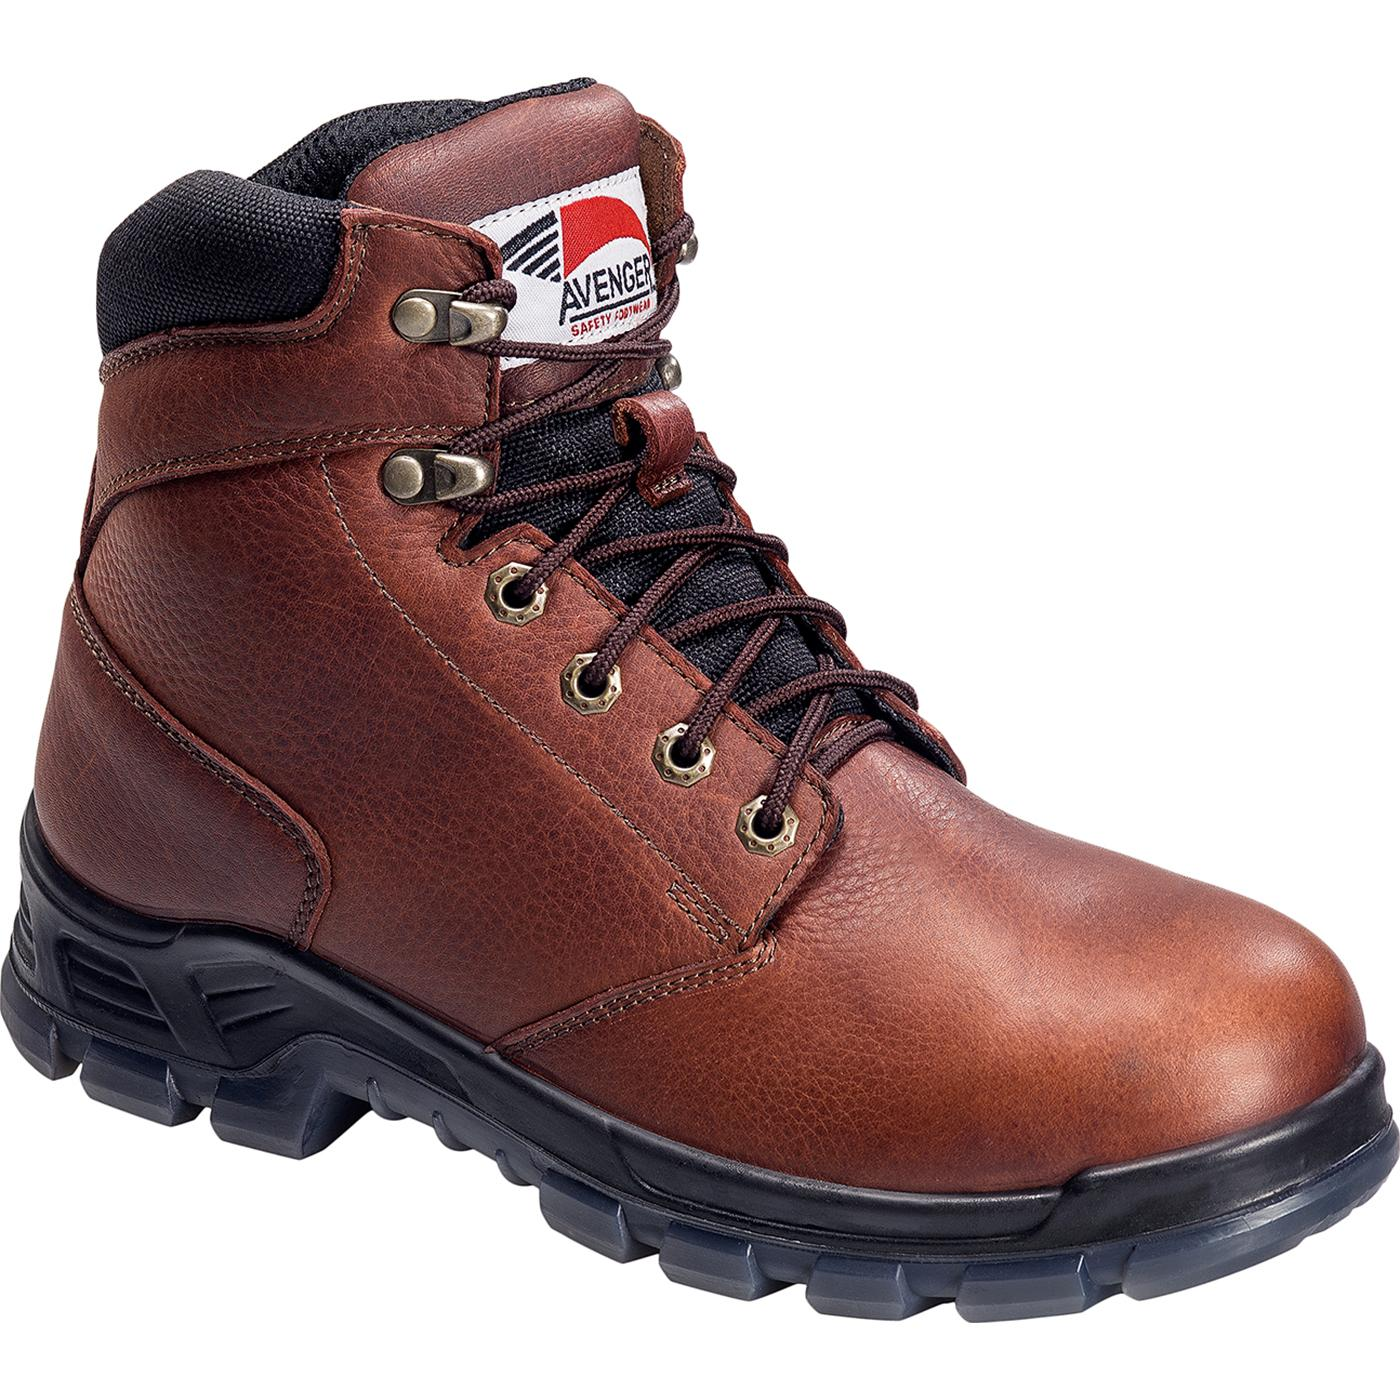 Steel Toe Work Shoes Waterproof